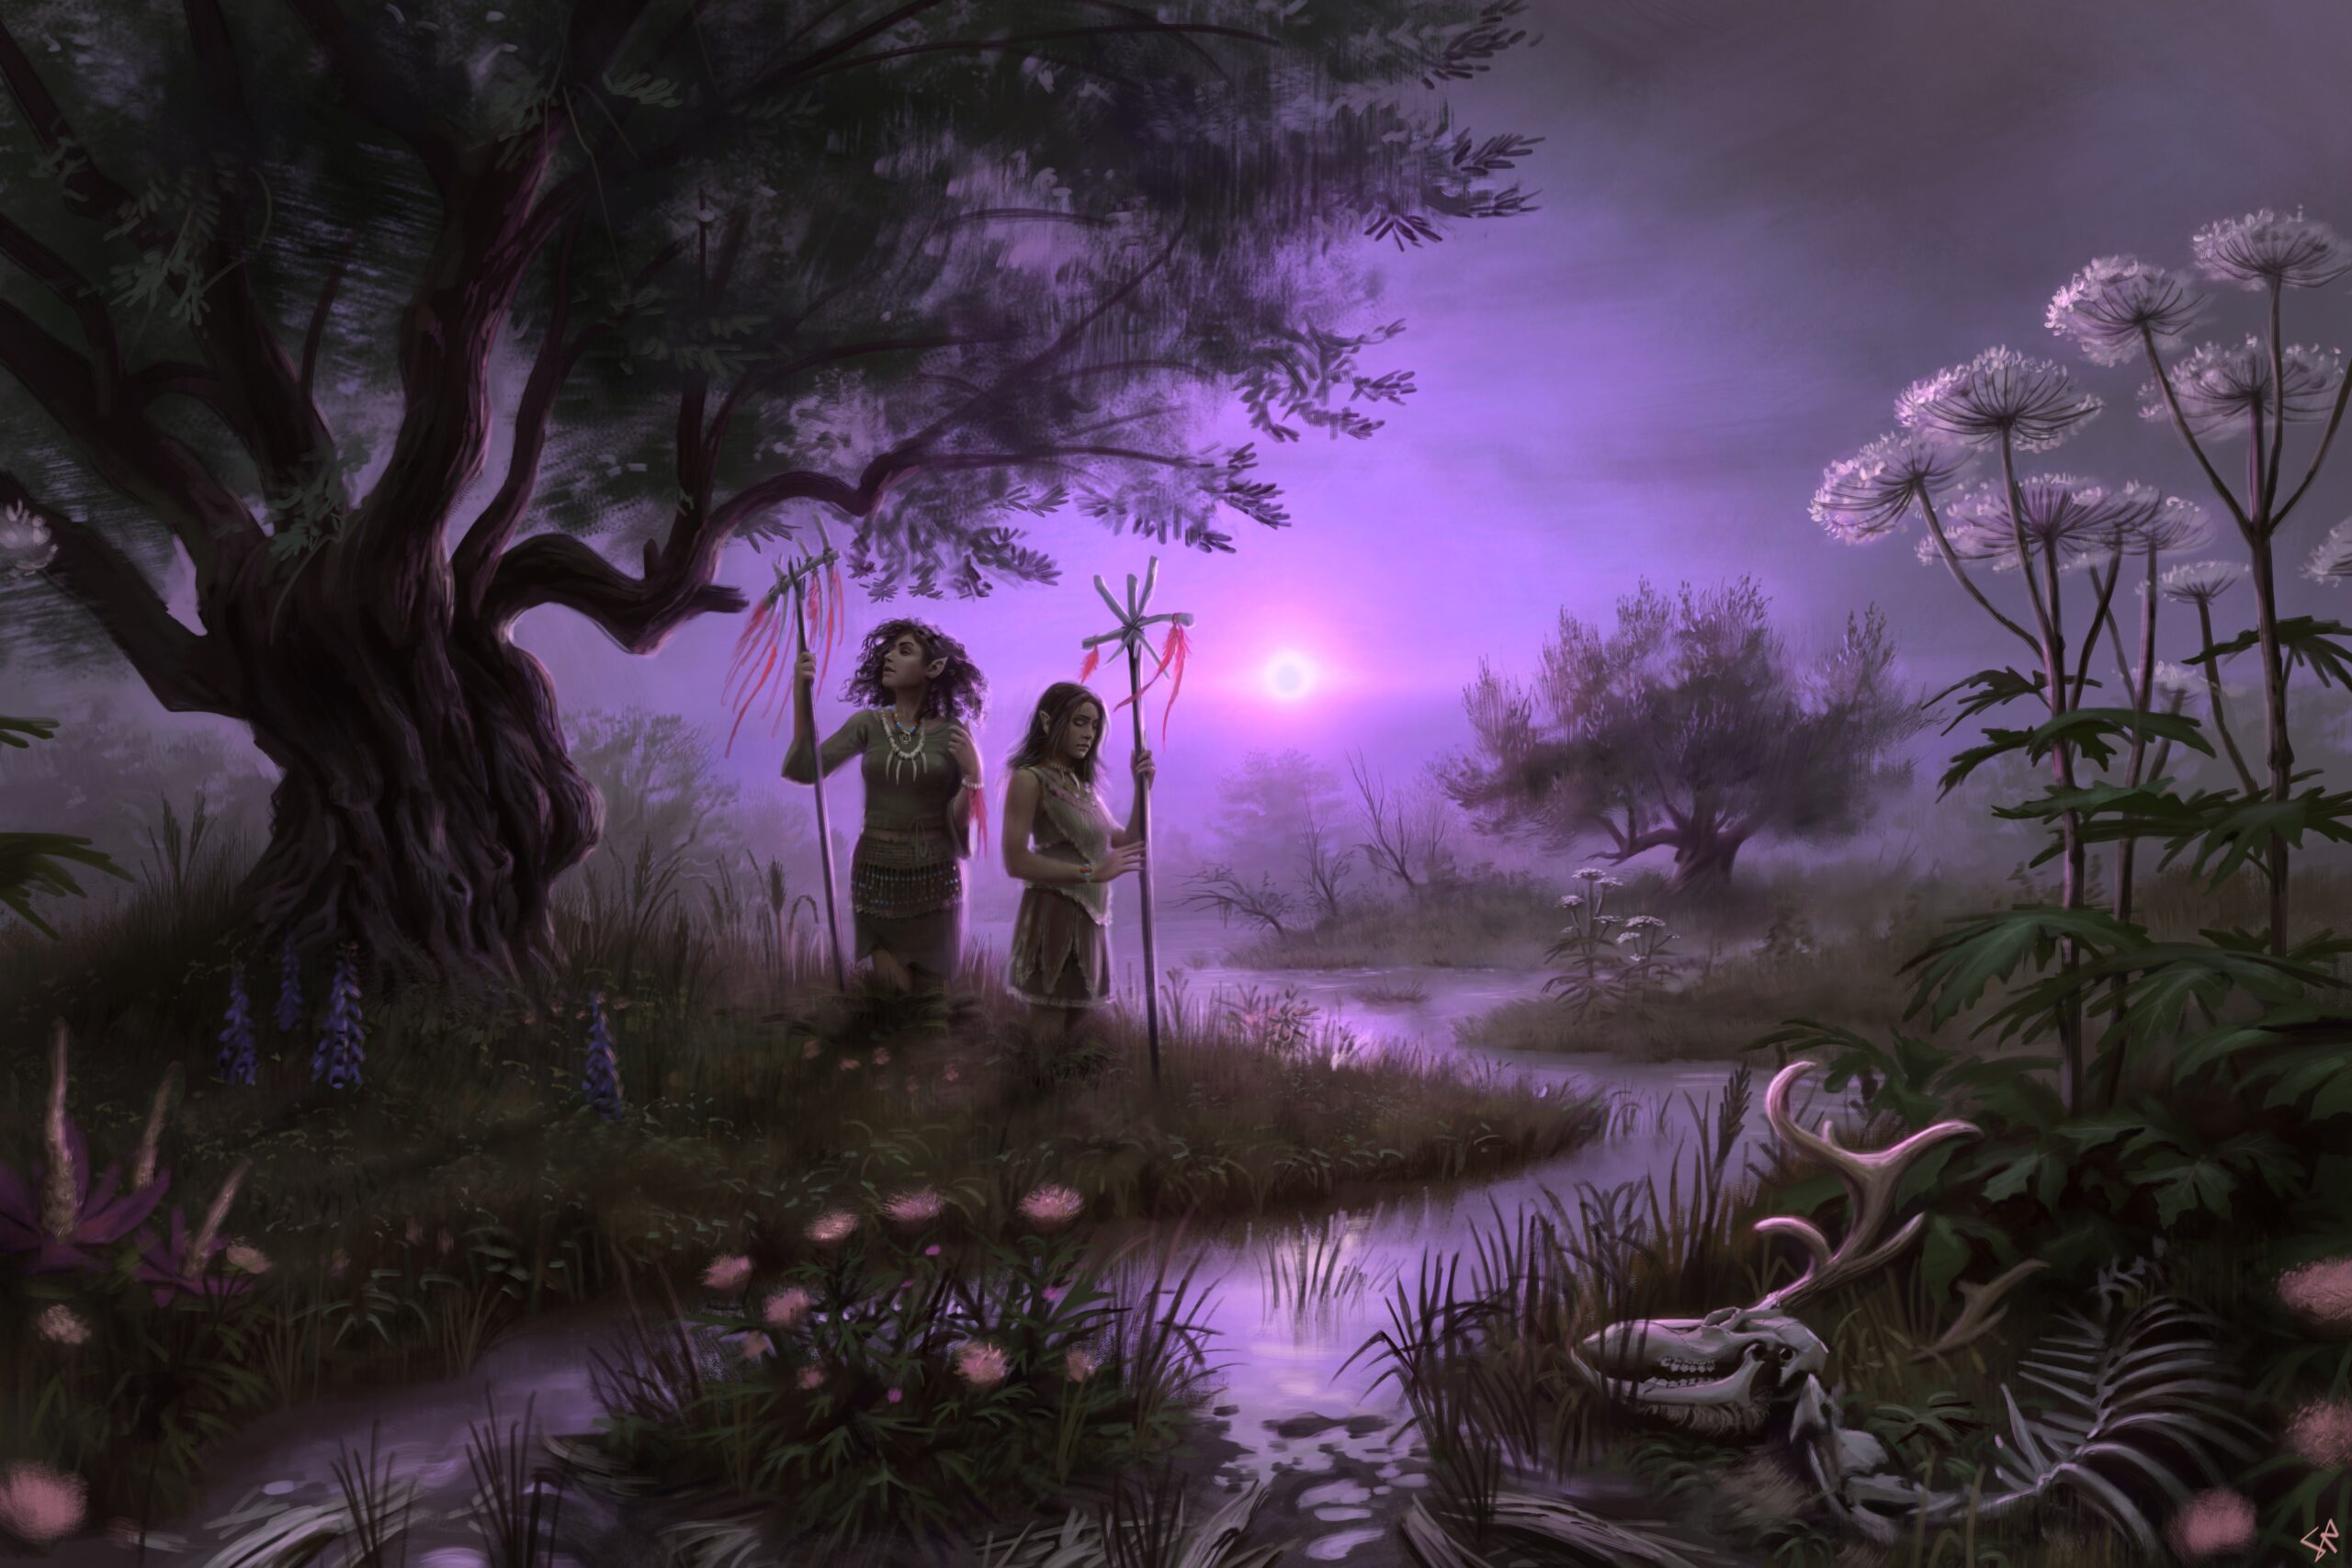 A painting of a dark fantasy swamp with purple lighting.